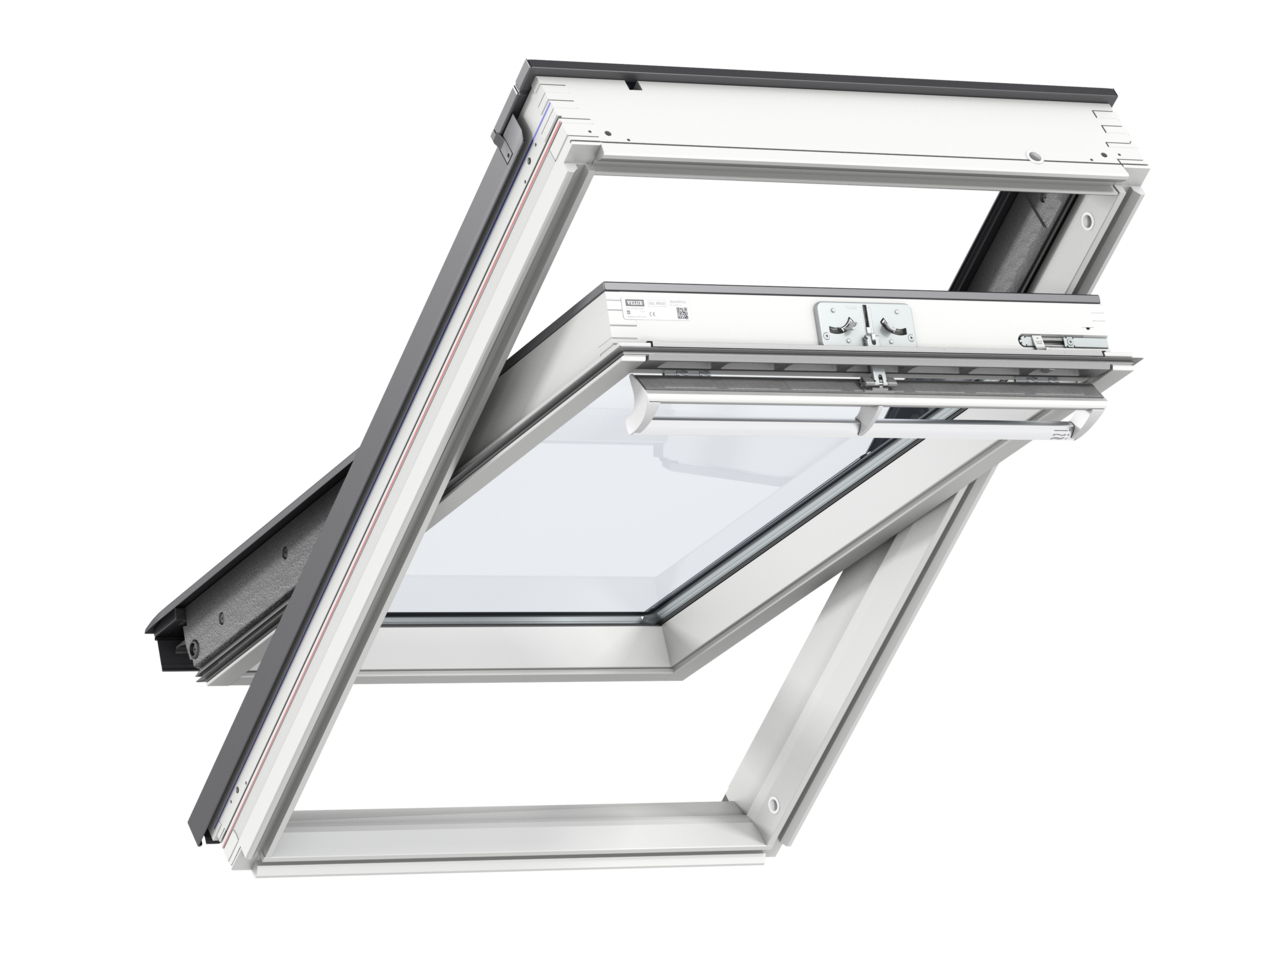 Velux GGL PK10 940 x 1600mm Centre Pivot 60Pane Roof Window - White Painted